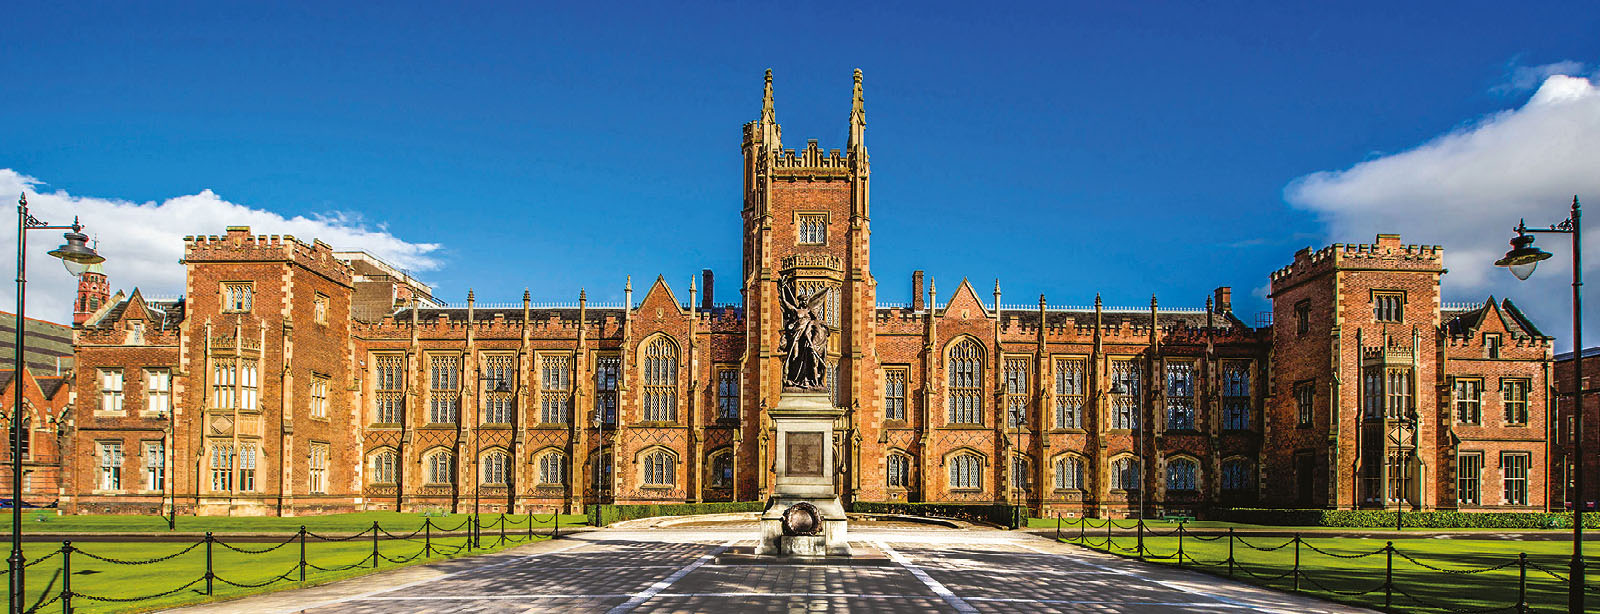 11 Reasons International Students Choose Queen's University Belfast for Studying Abroad!